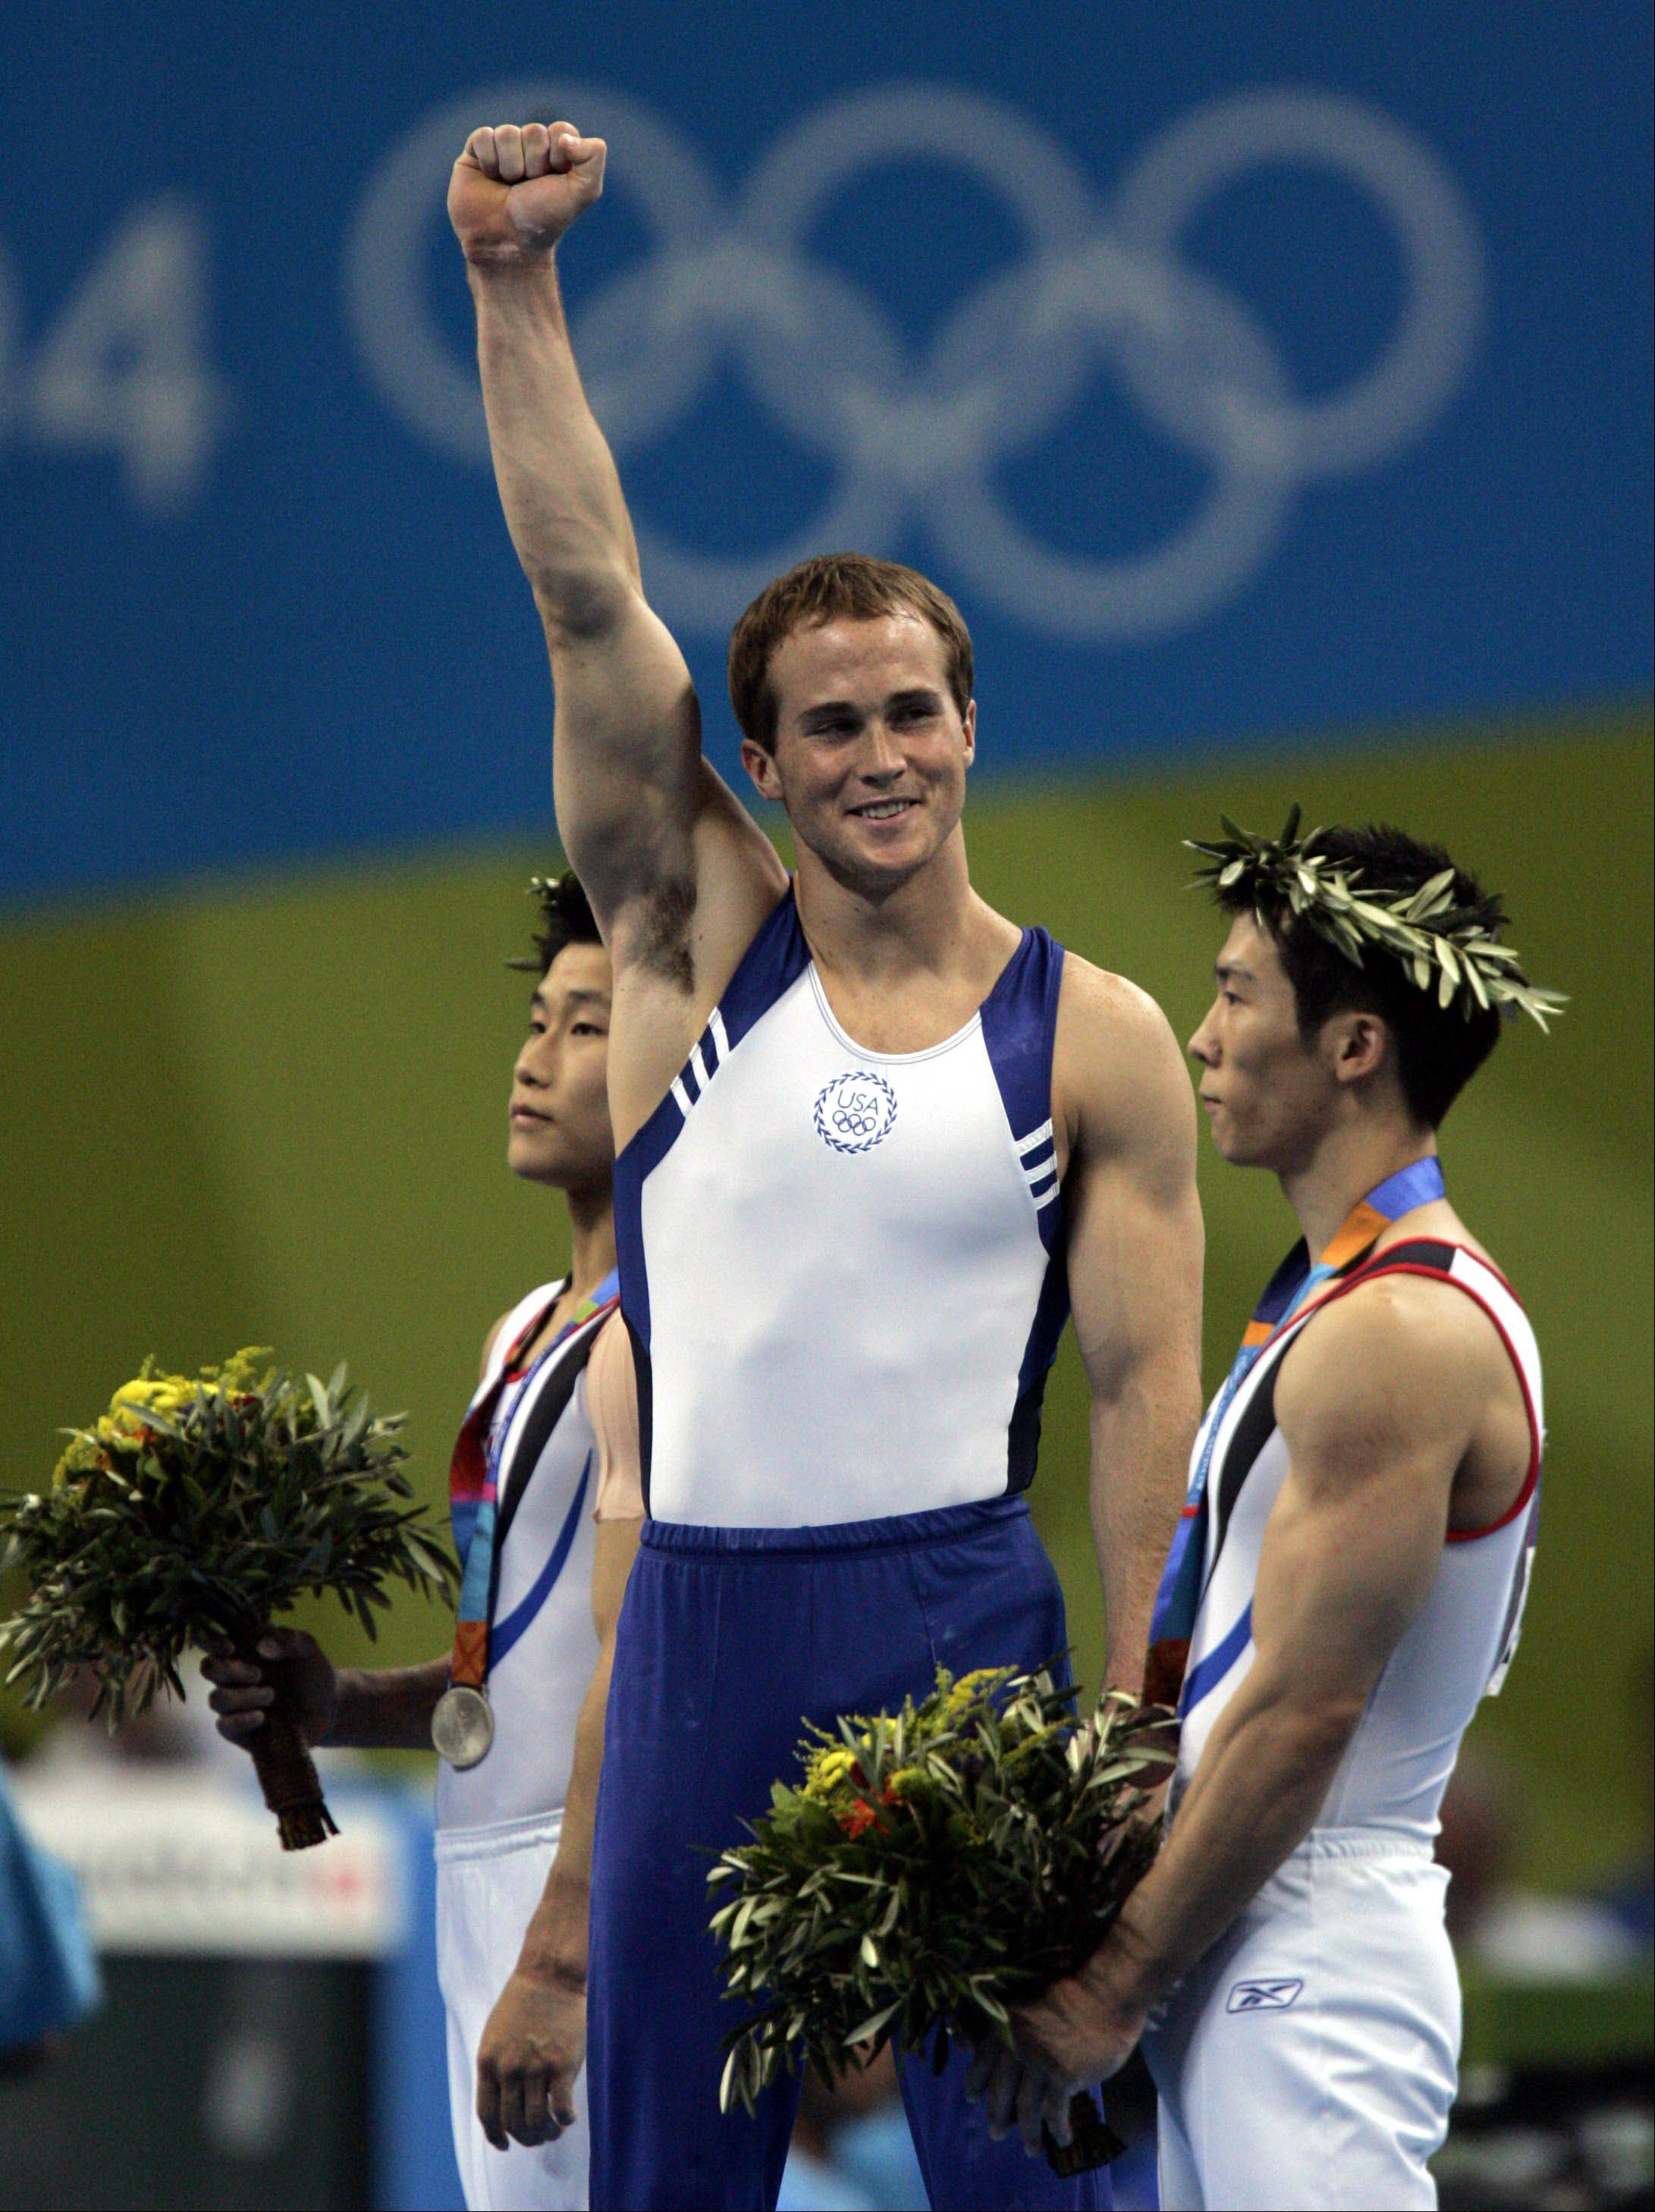 Paul Hamm of the United States, center, celebrates after winning the gold medal during the men's gymnastics individual all-around final at the 2004 Summer Olympic Games in Athens, Wednesday, Aug. 18, 2004.